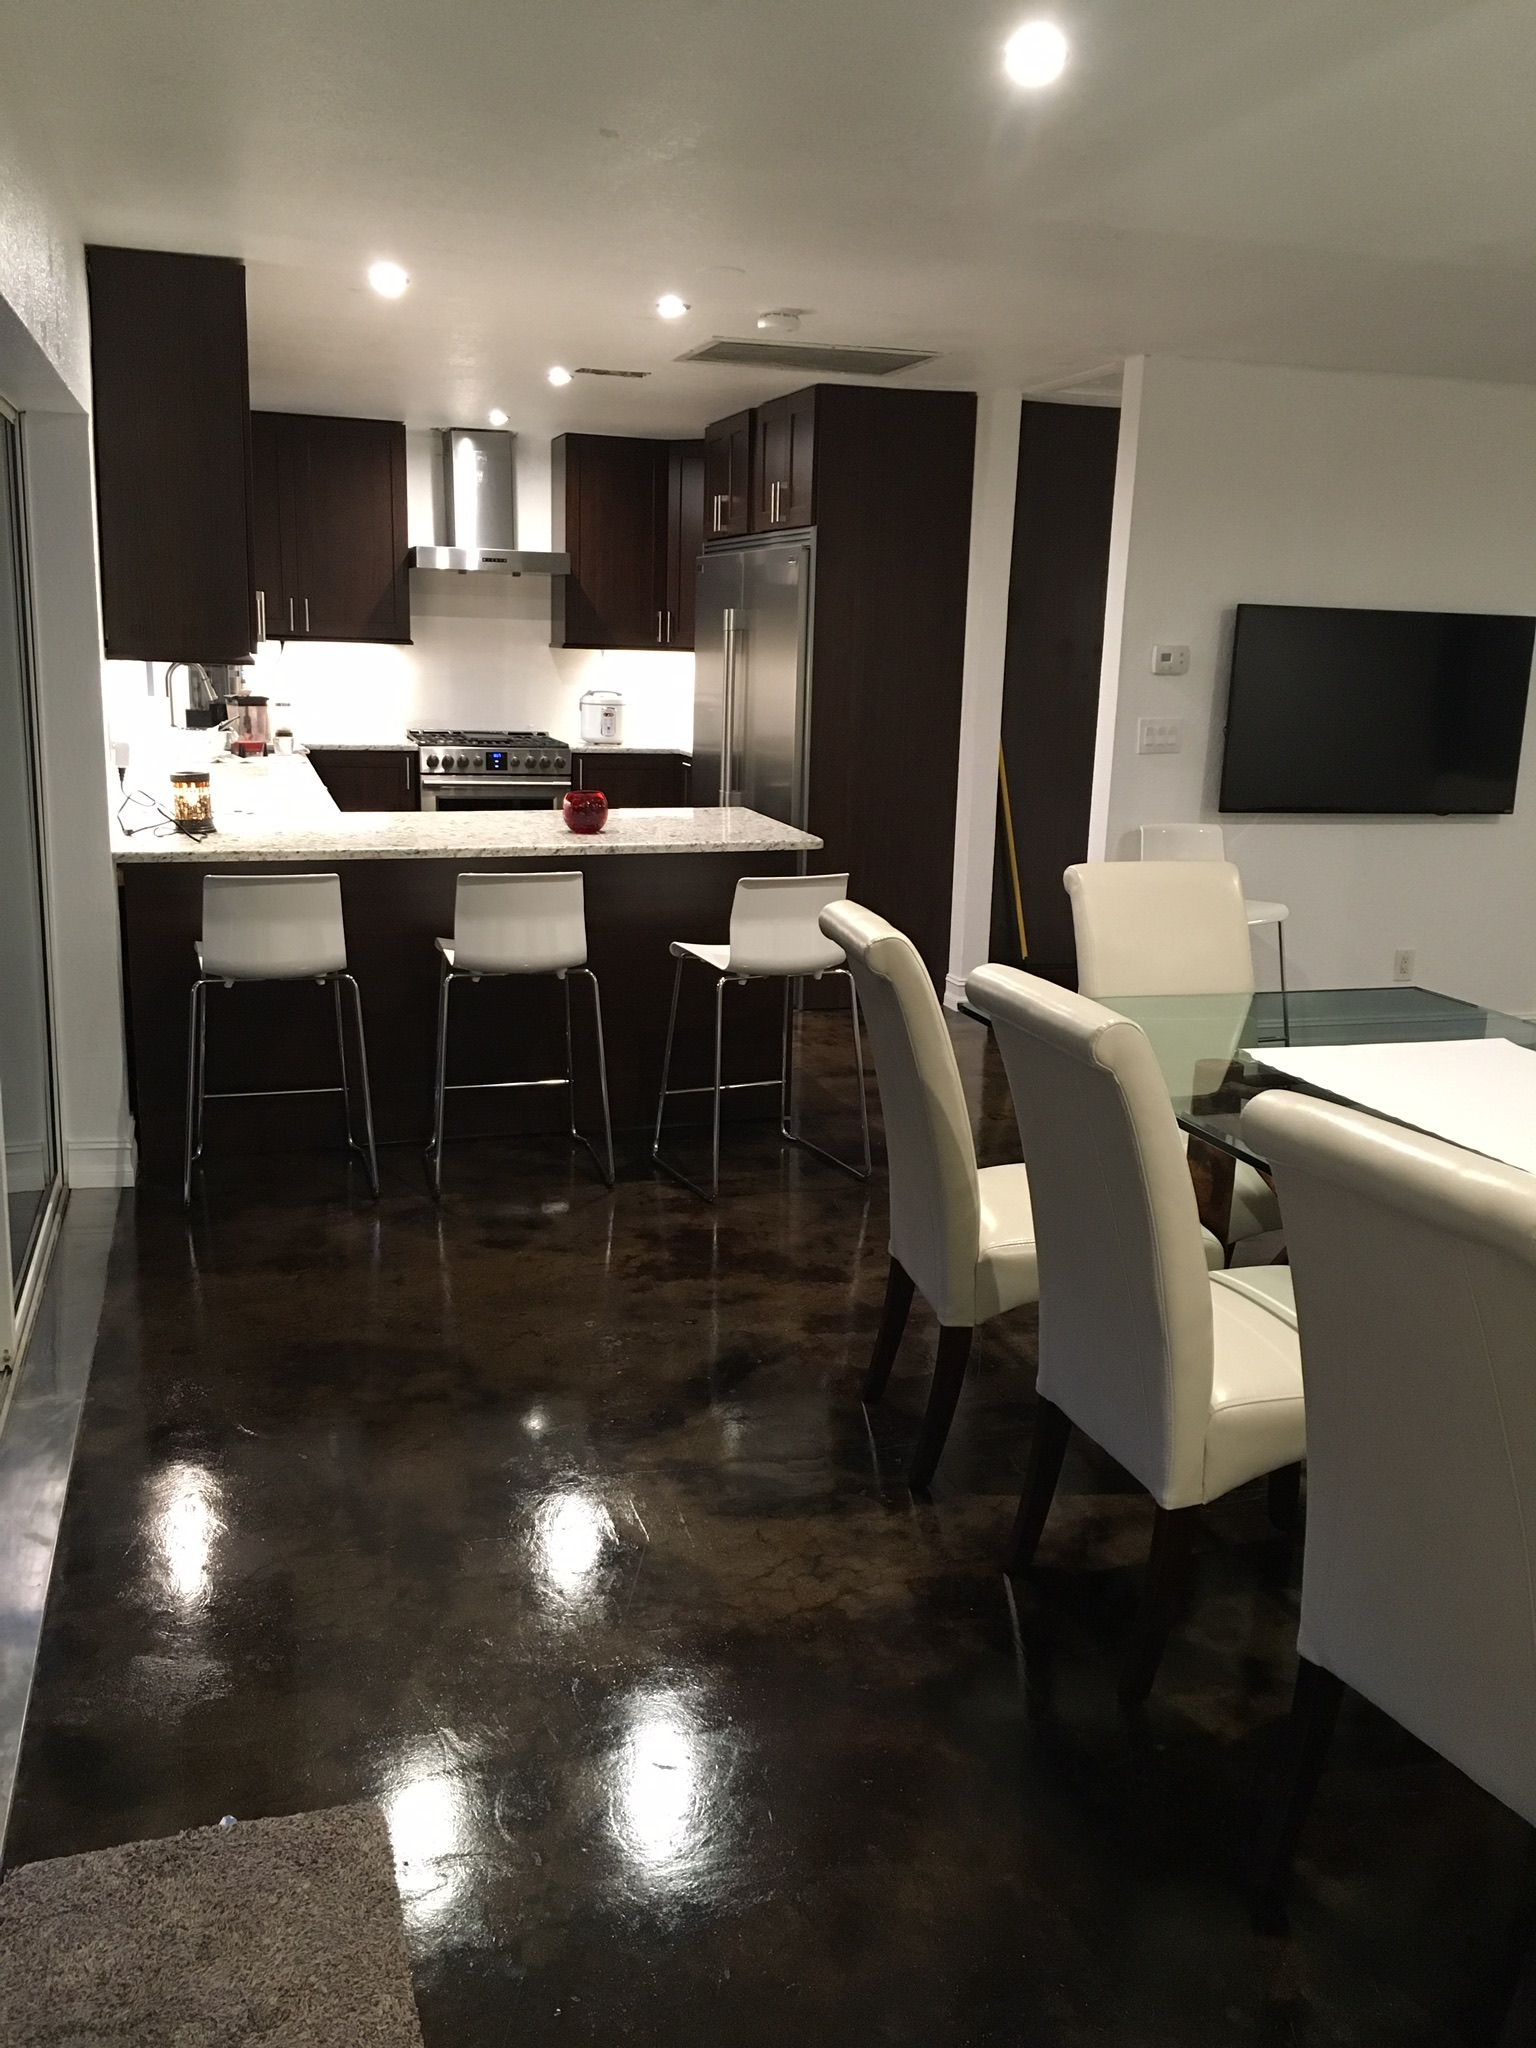 Classy elegant top notch acid stained concrete floors see all the photos in